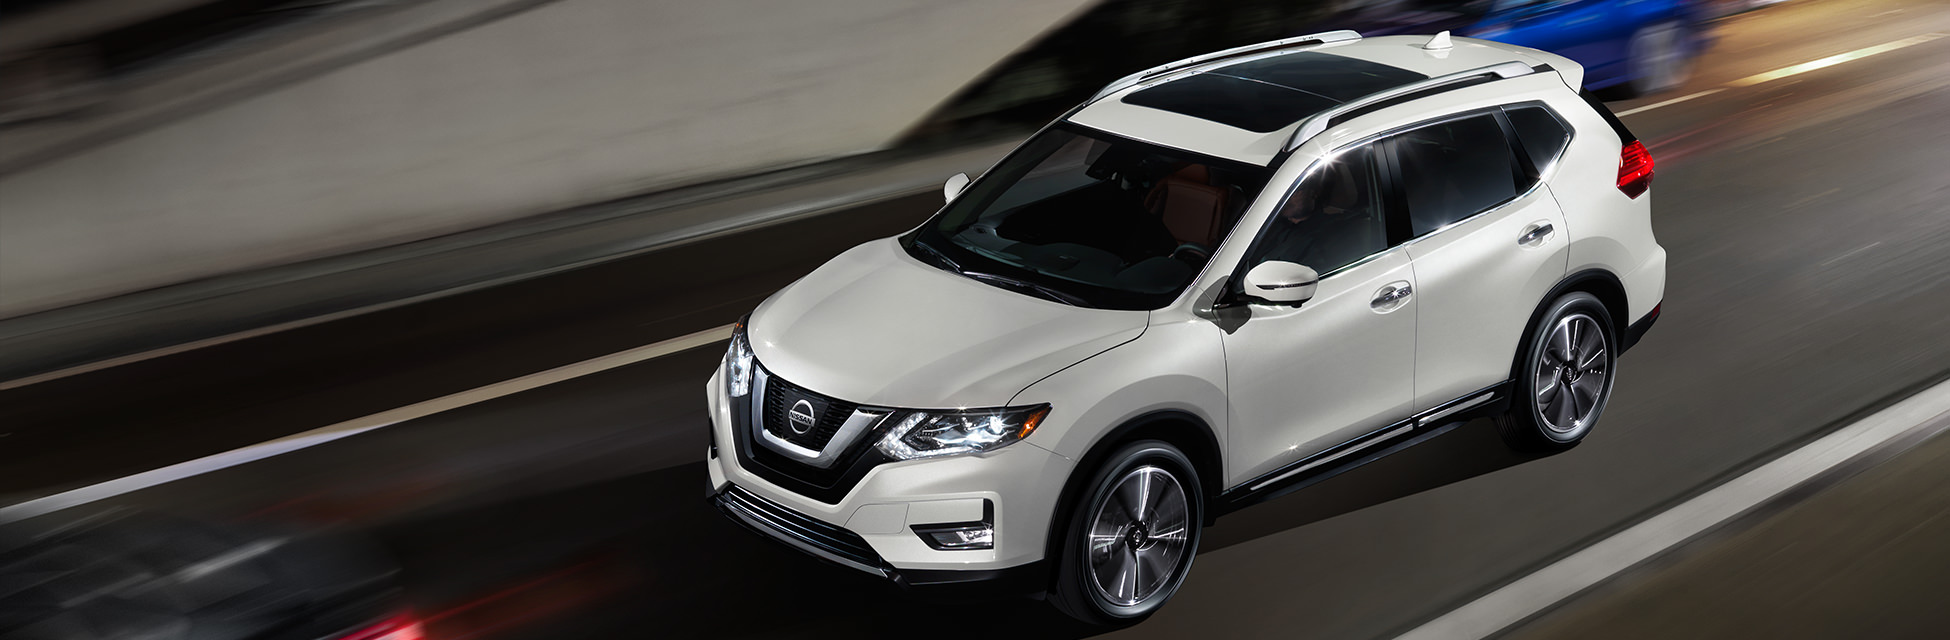 New 2017 Nissan Rogue Up To 25% Off MSRP*